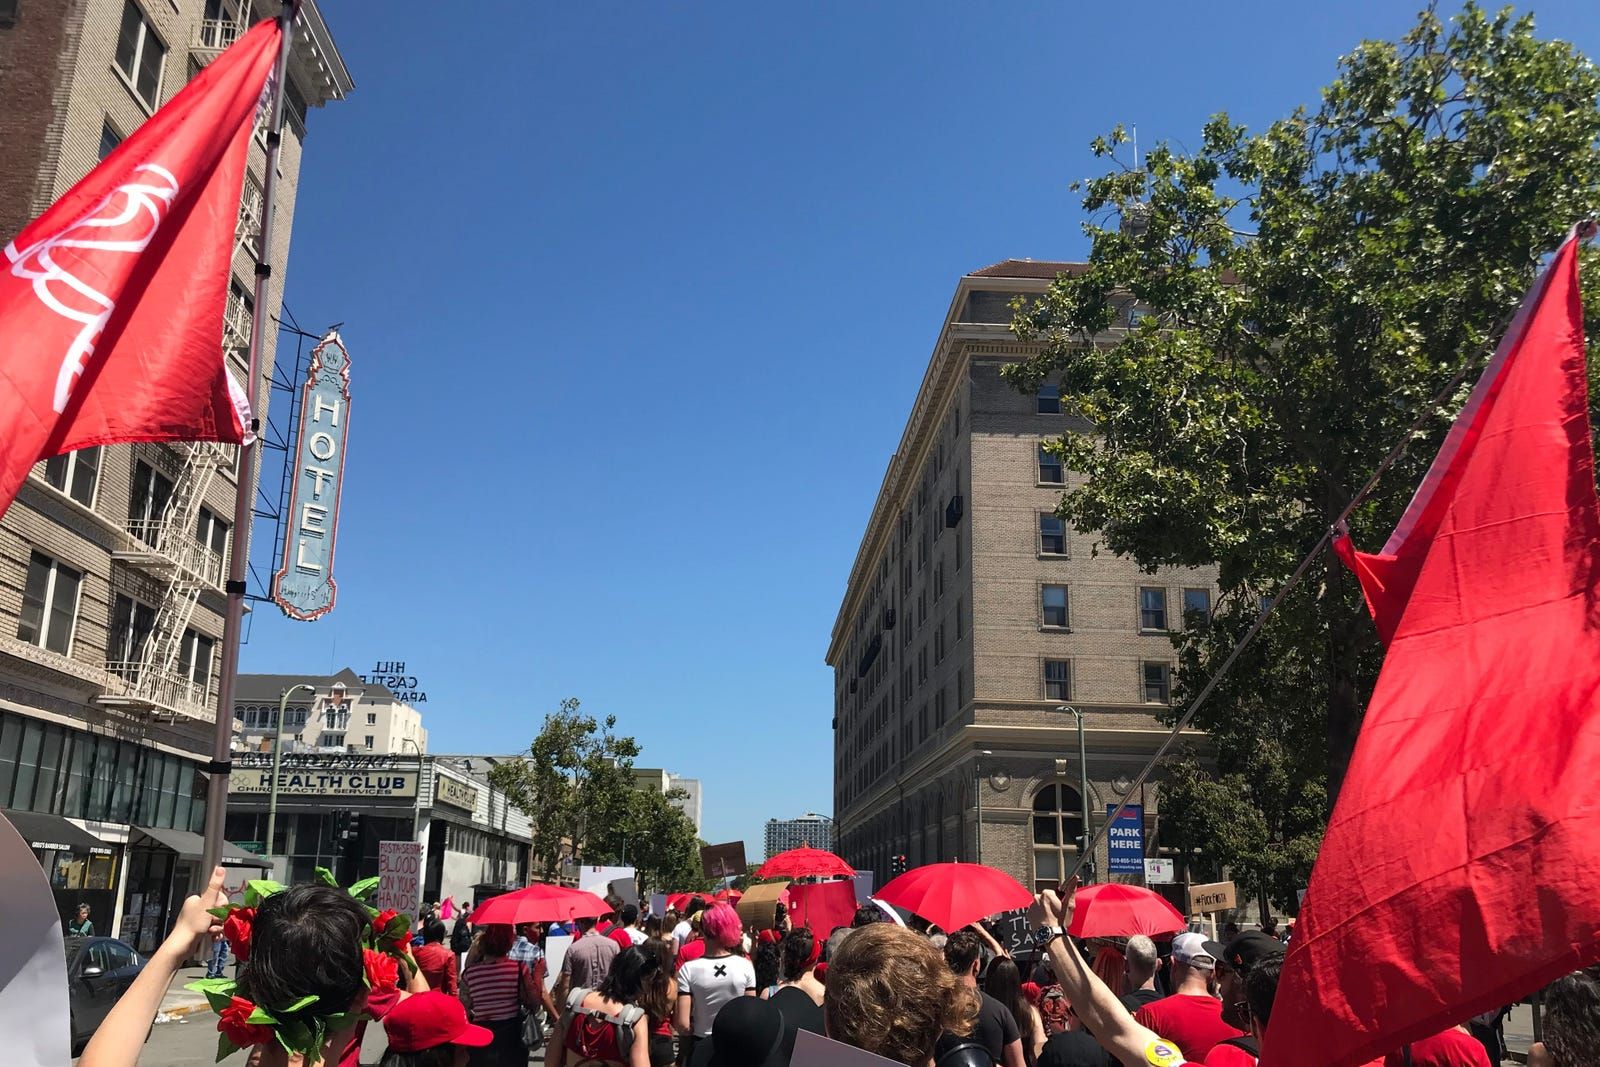 International Whores Day attendees marching down 14th Street in Oakland.